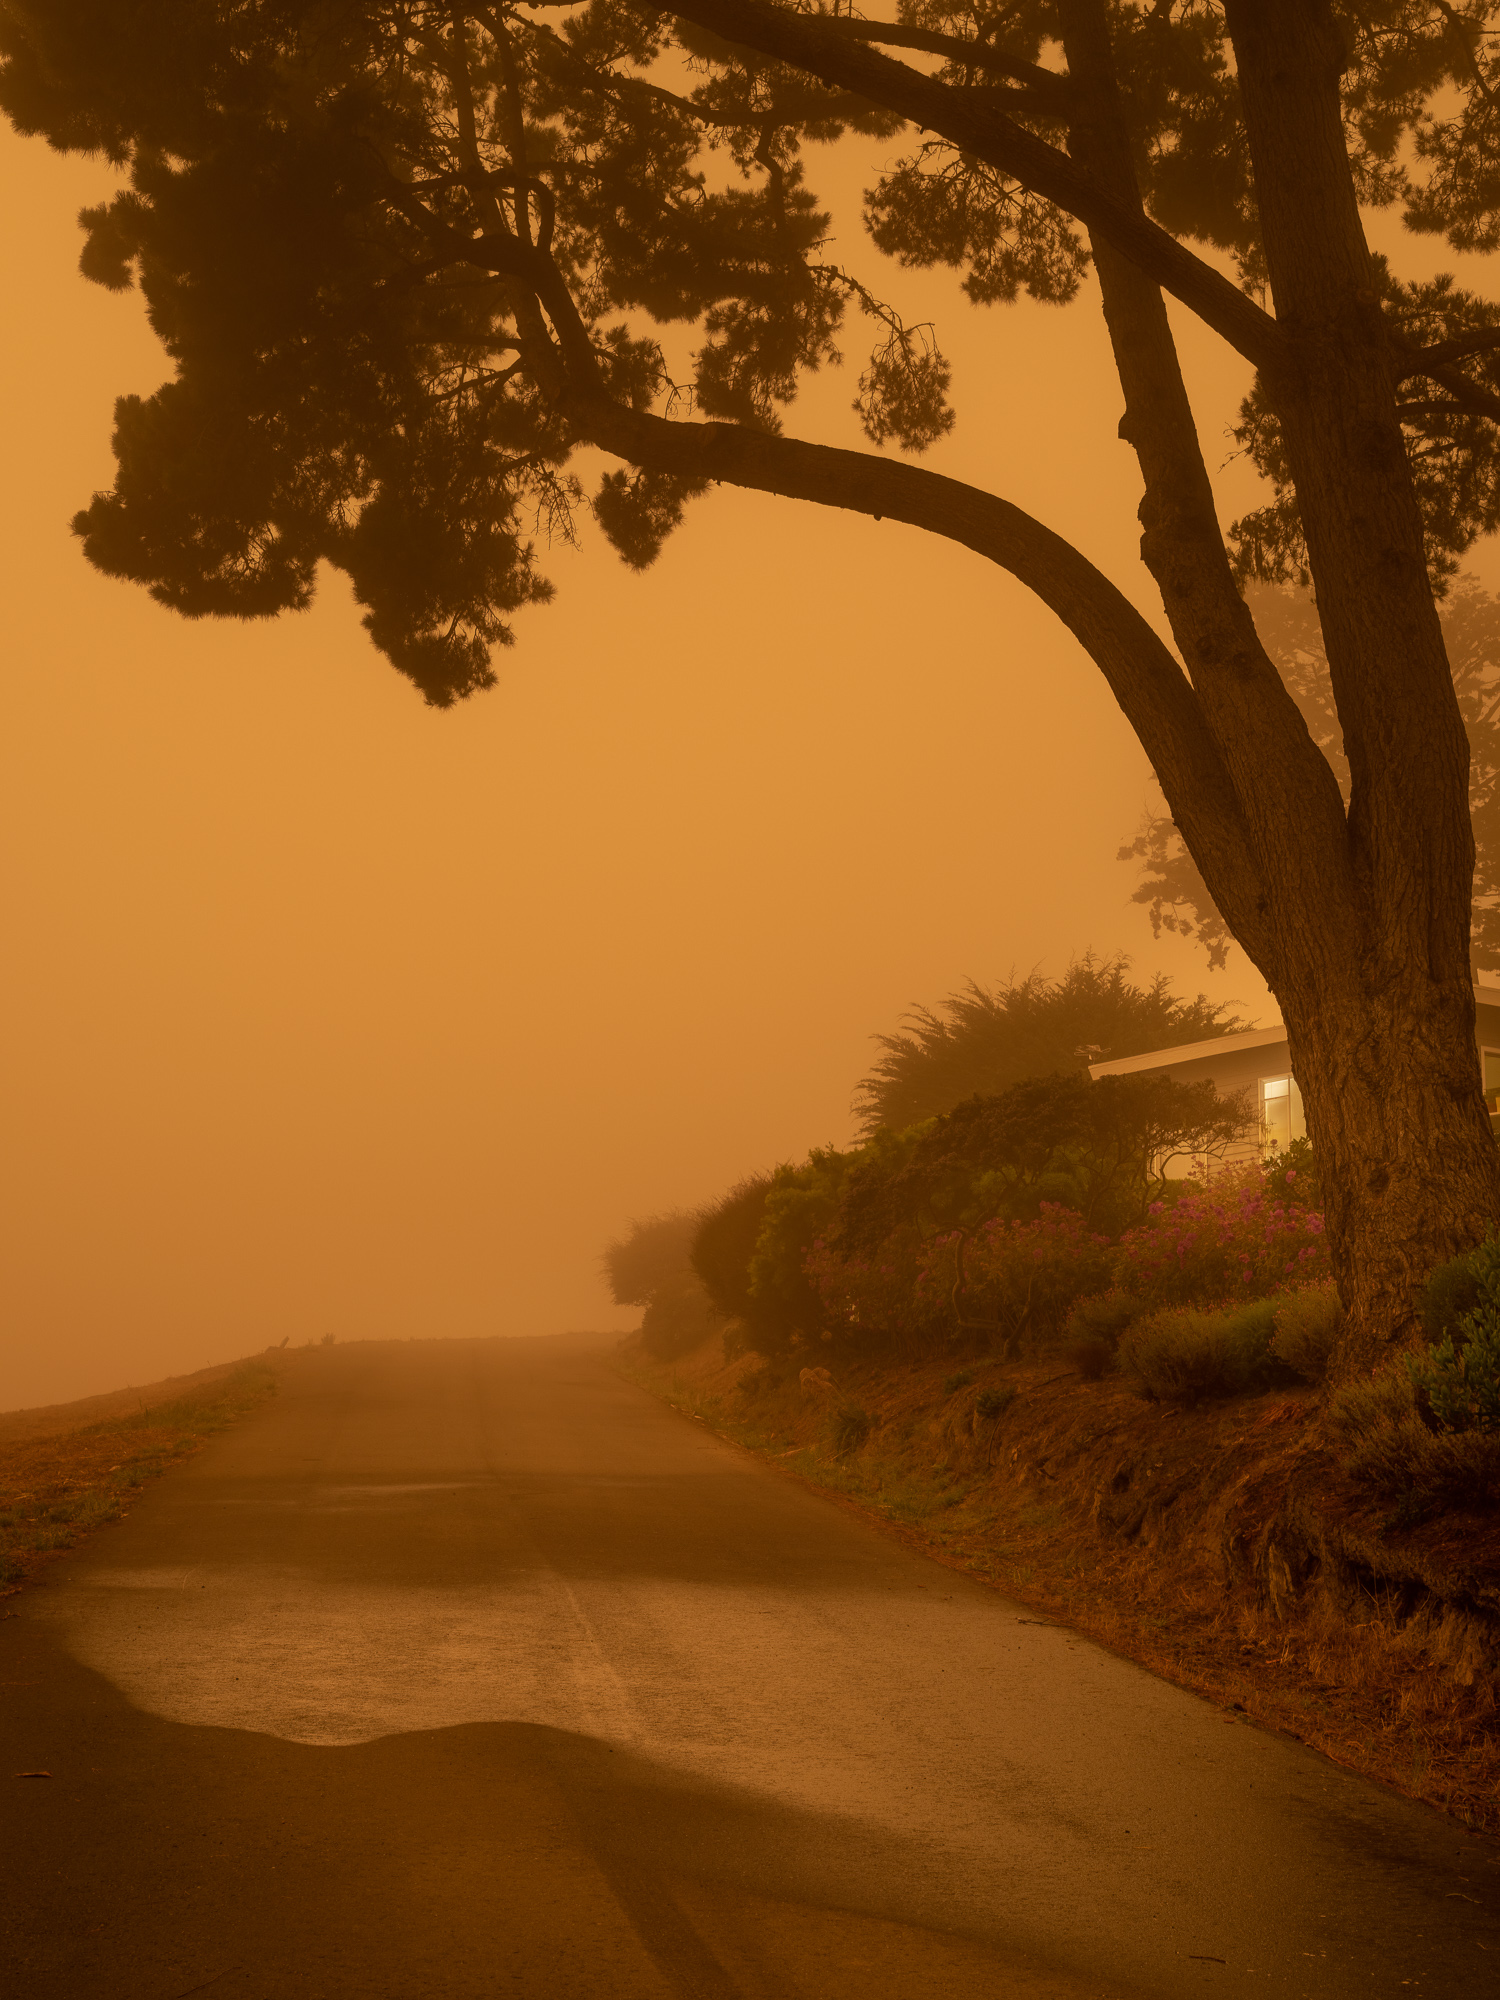 Orange skies during the day brought on by the fires in California.